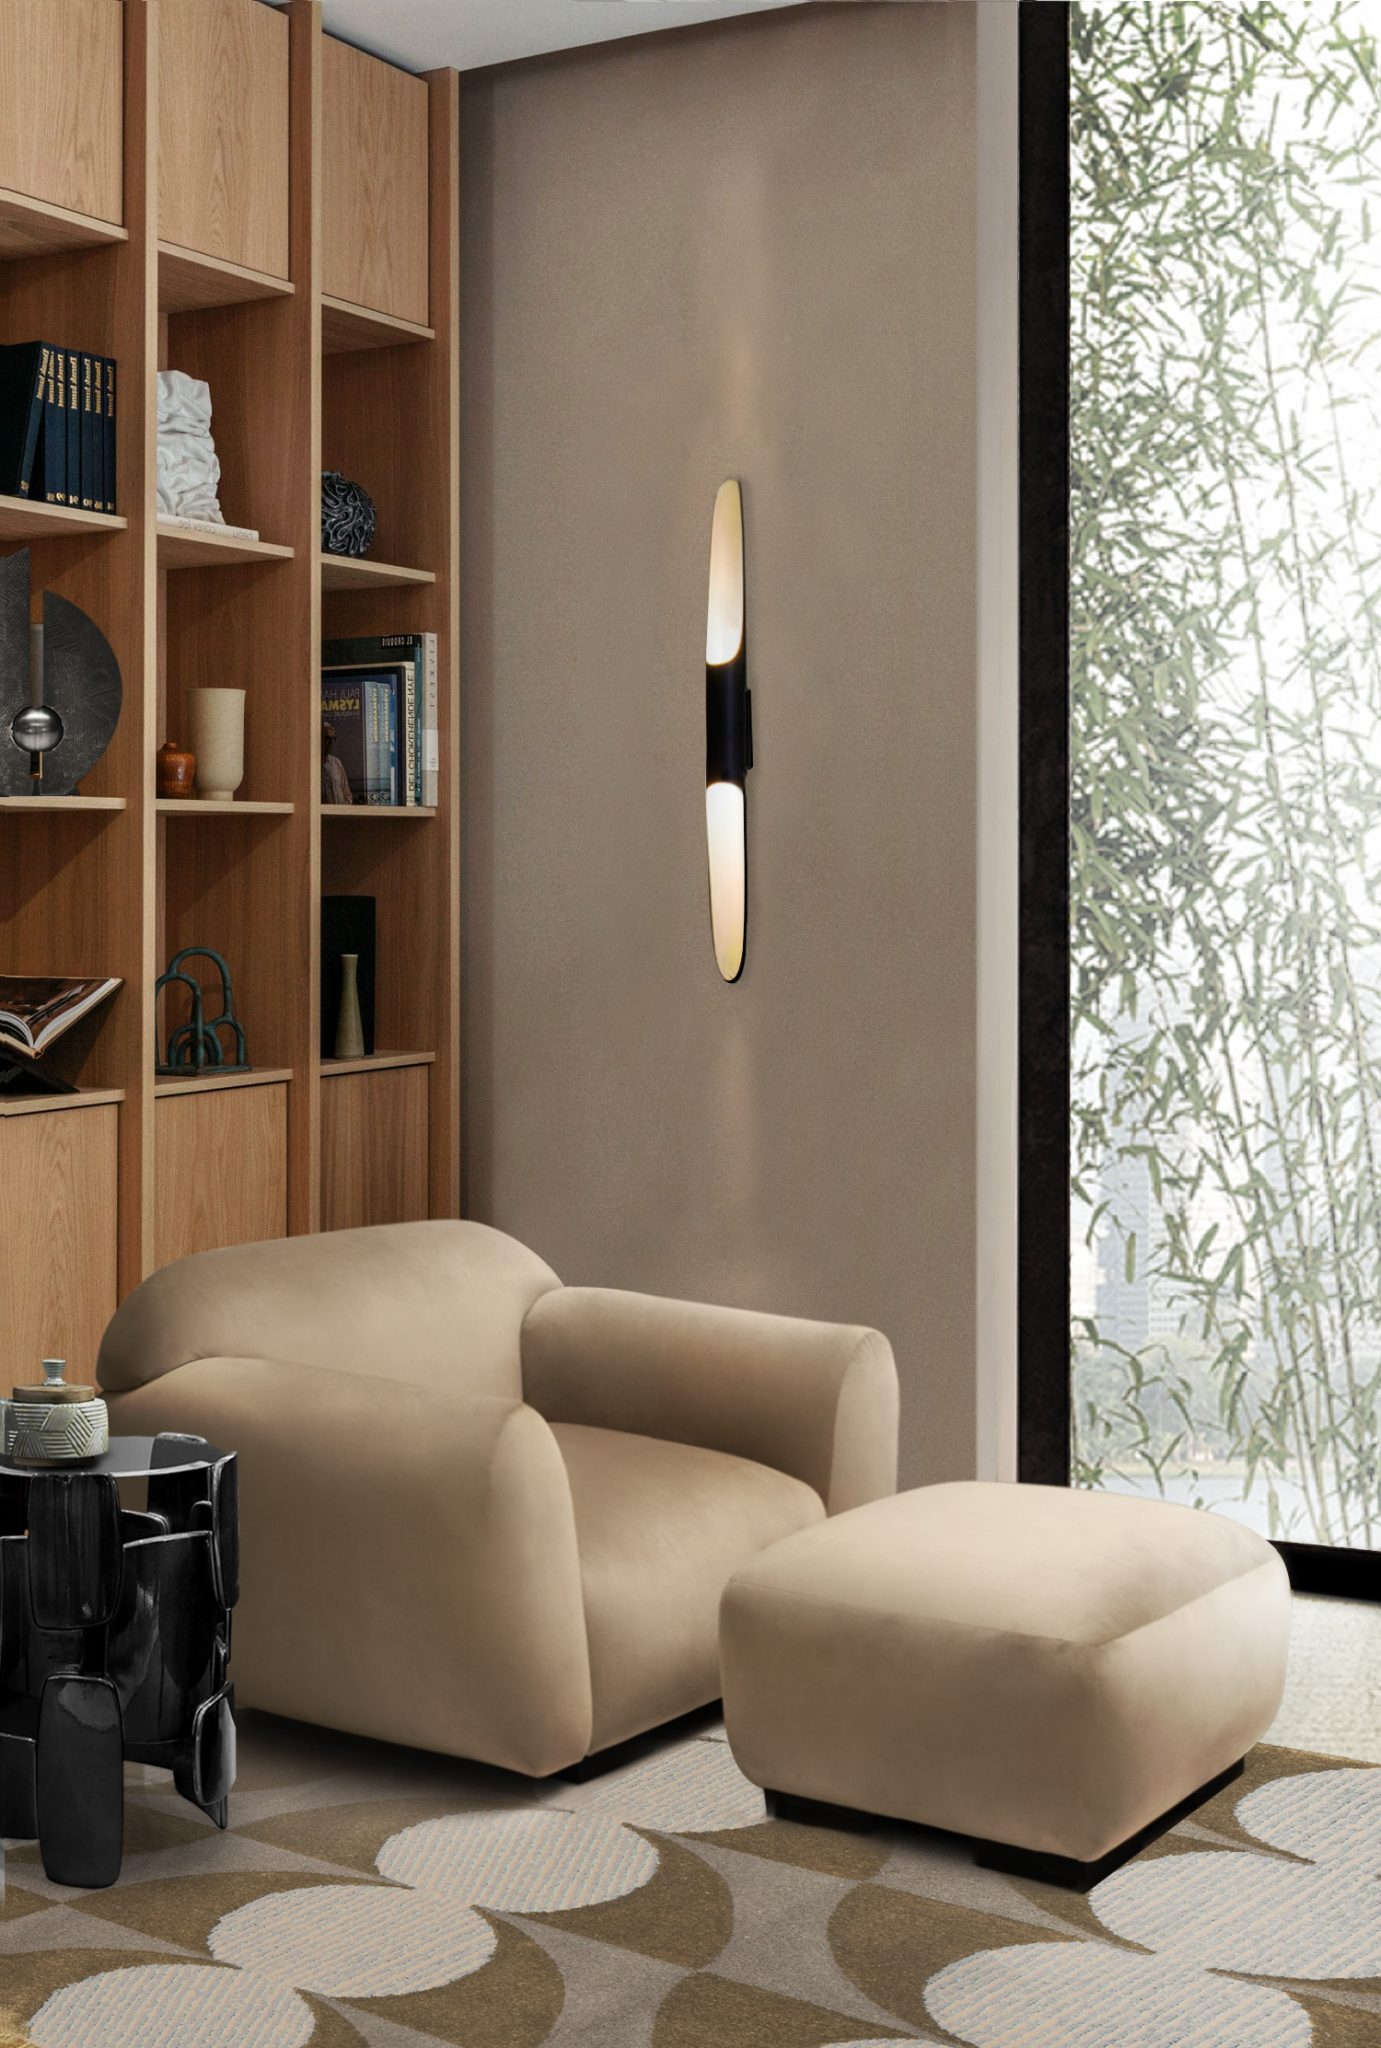 THE PERFECT INDOOR WALL LIGHTING EFFECT